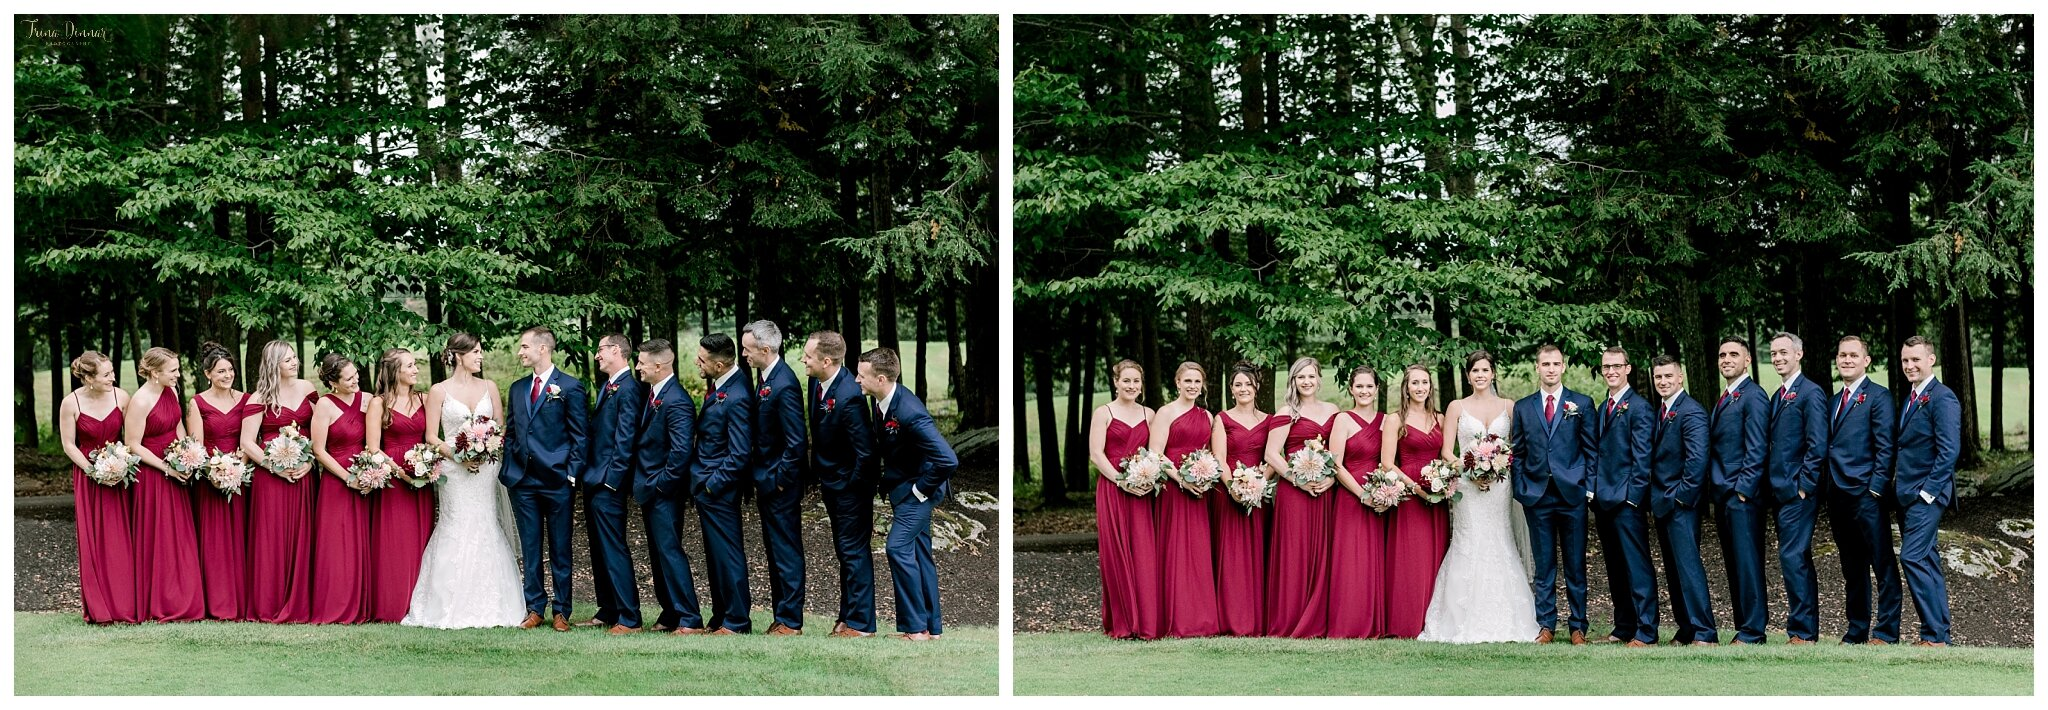 Wedding Party Portraits at the Falmouth Country Club.